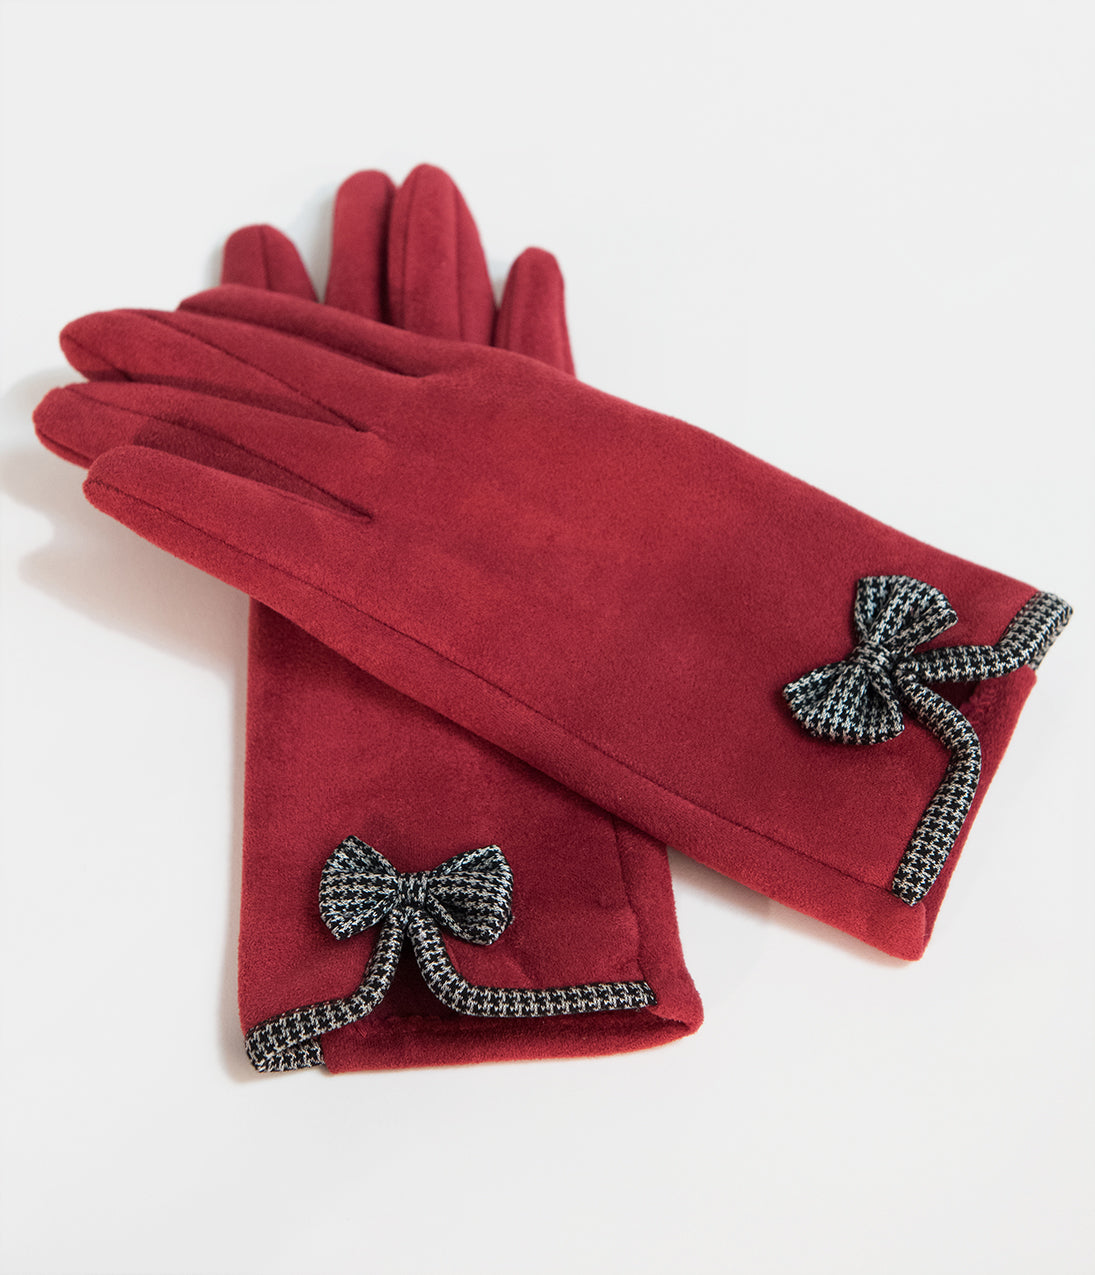 Vintage Style Gloves- Long, Wrist, Evening, Day, Leather, Lace Unique Vintage Red Suede  Houndstooth Bow Wrist Gloves $20.00 AT vintagedancer.com